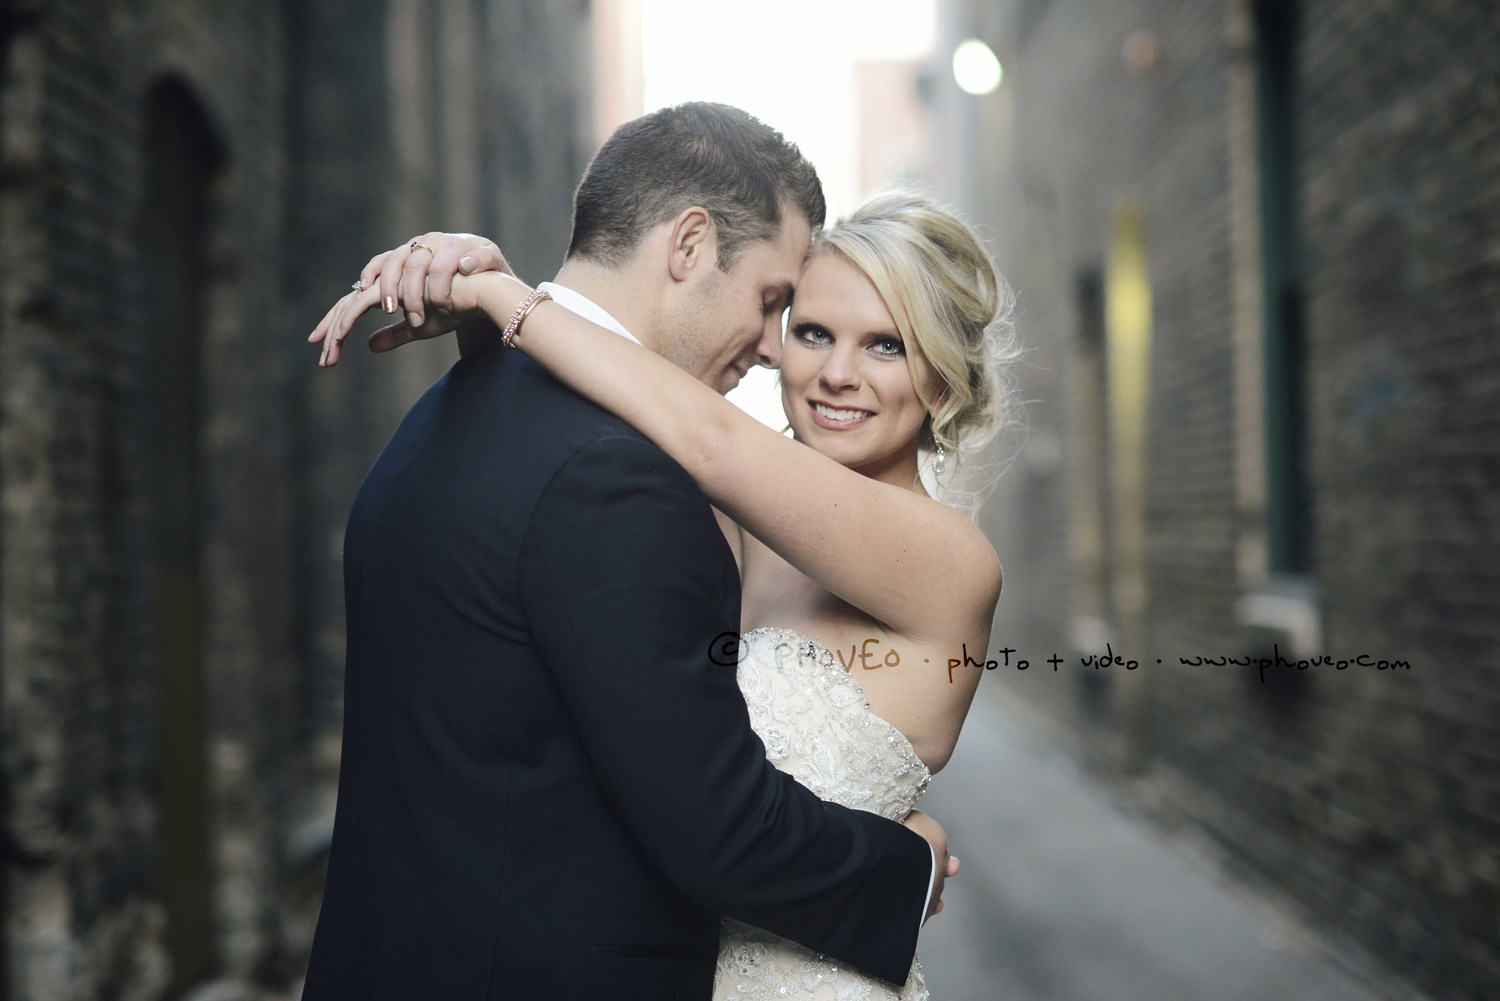 Alyssa + Mike | St. Paul, MN